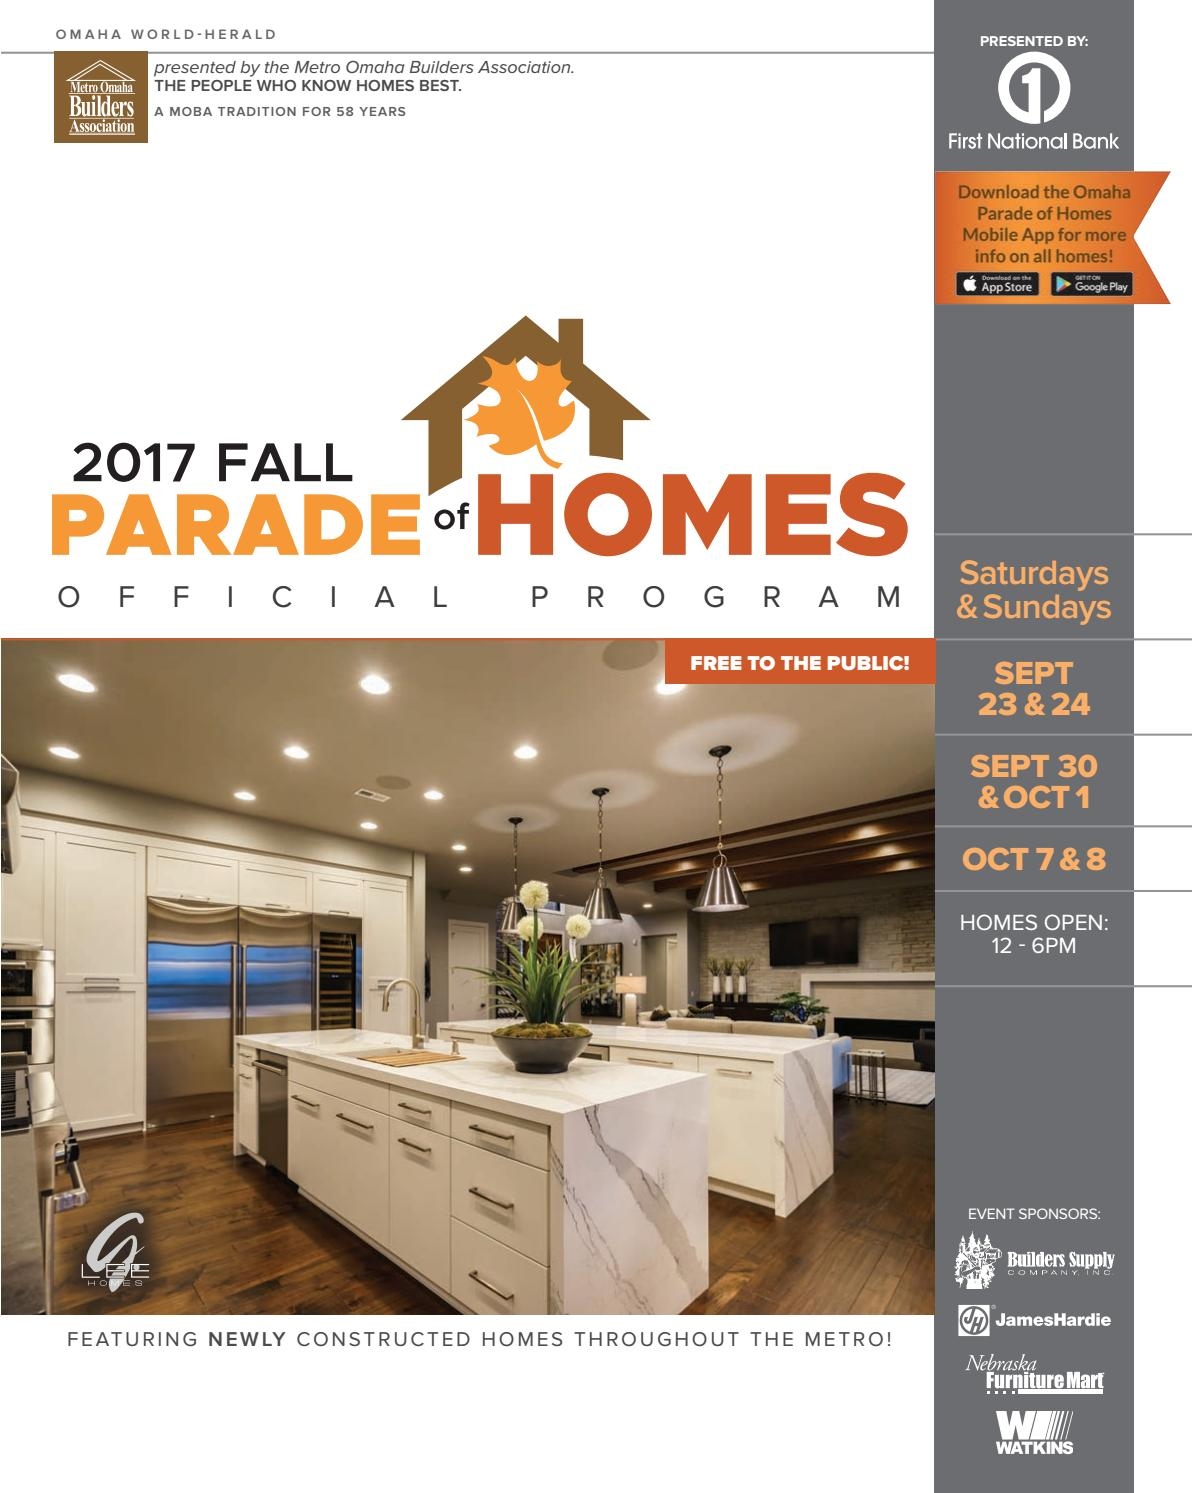 2017 fall parade of homes by omaha world herald issuu